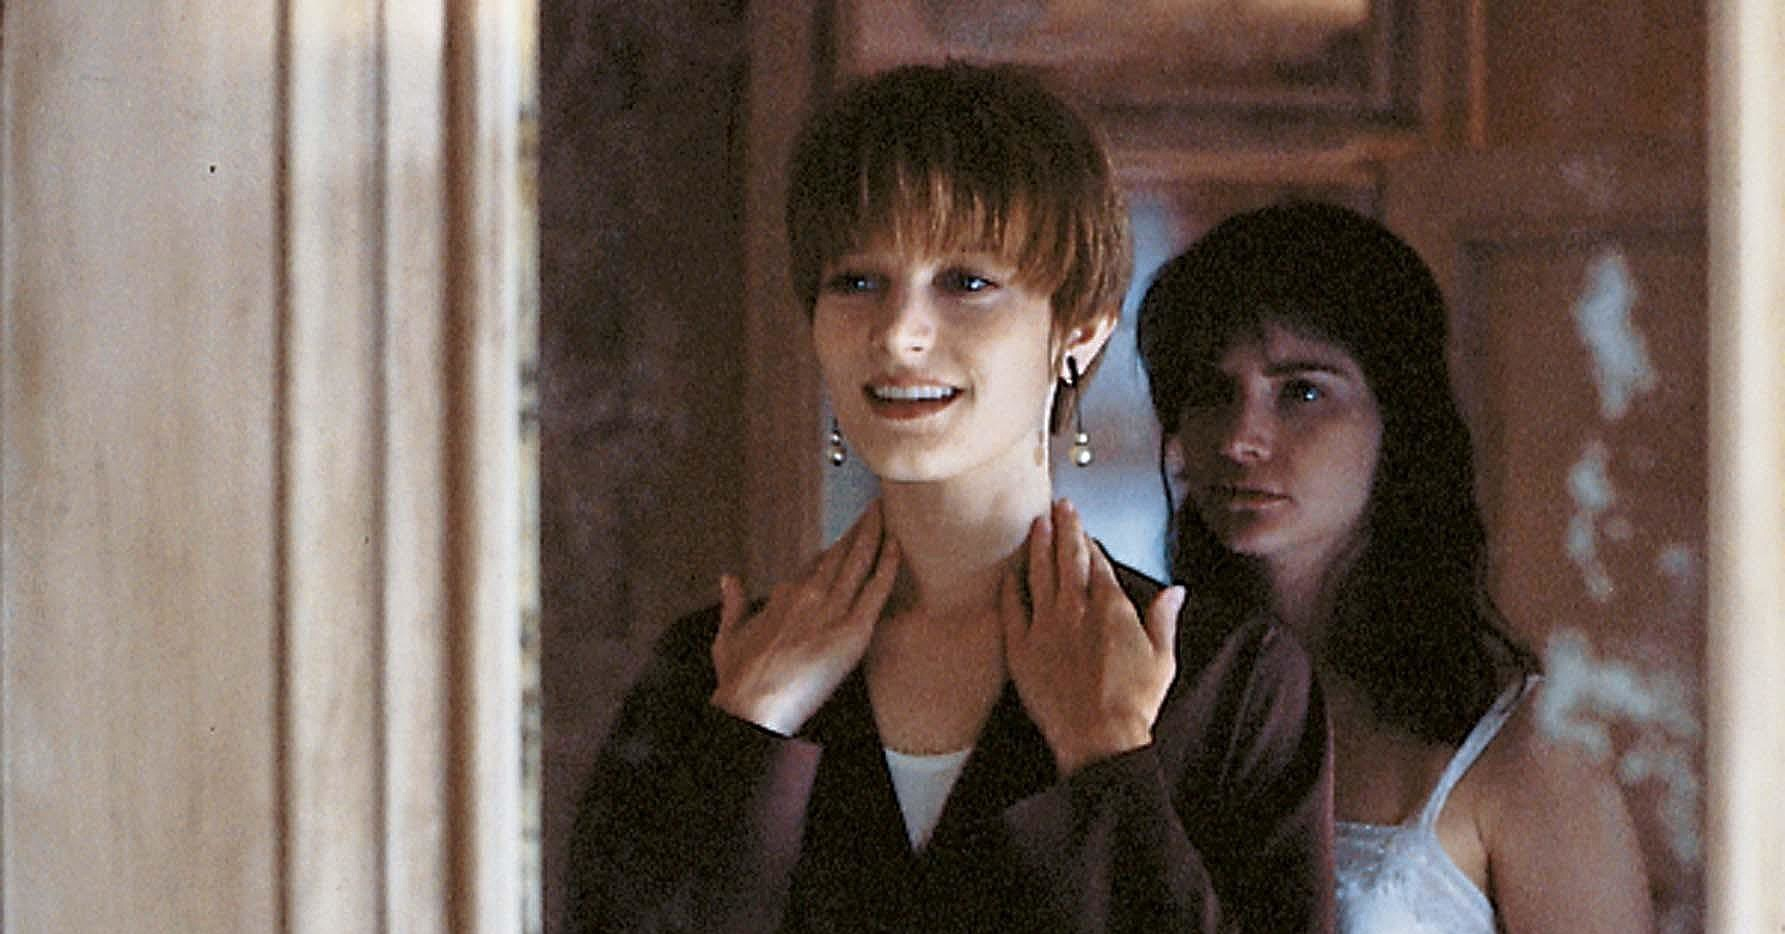 leigh single girls With bridget fonda, jennifer jason leigh single white female r which girl fight was most impressive.